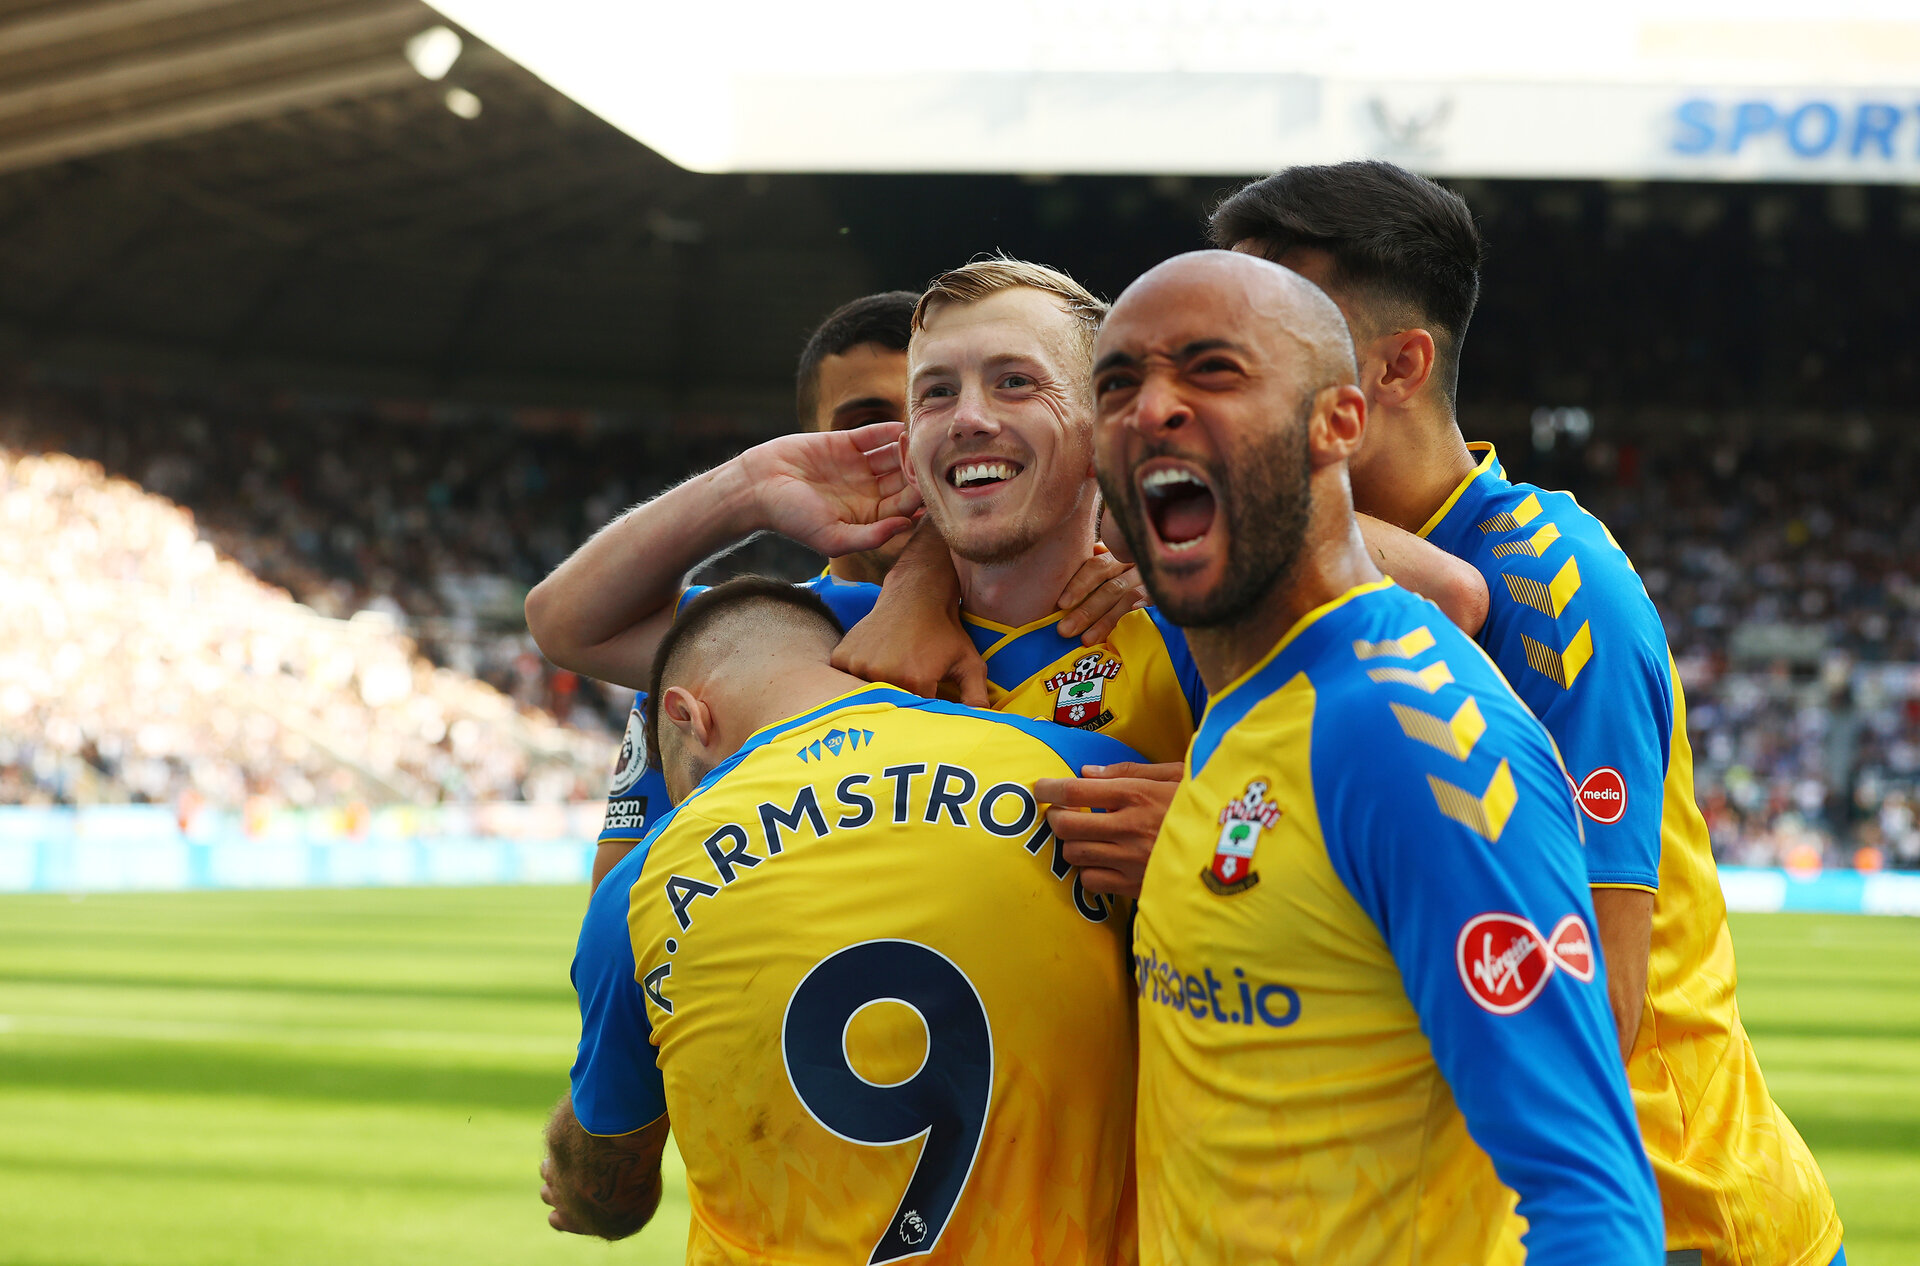 NEWCASTLE UPON TYNE, ENGLAND - AUGUST 28: James Ward-Prowse celebrates with his team mates including Nathan Redmond(R) during the Premier League match between Newcastle United  and  Southampton at St. James Park on August 28, 2021 in Newcastle upon Tyne, England. (Photo by Matt Watson/Southampton FC via Getty Images)